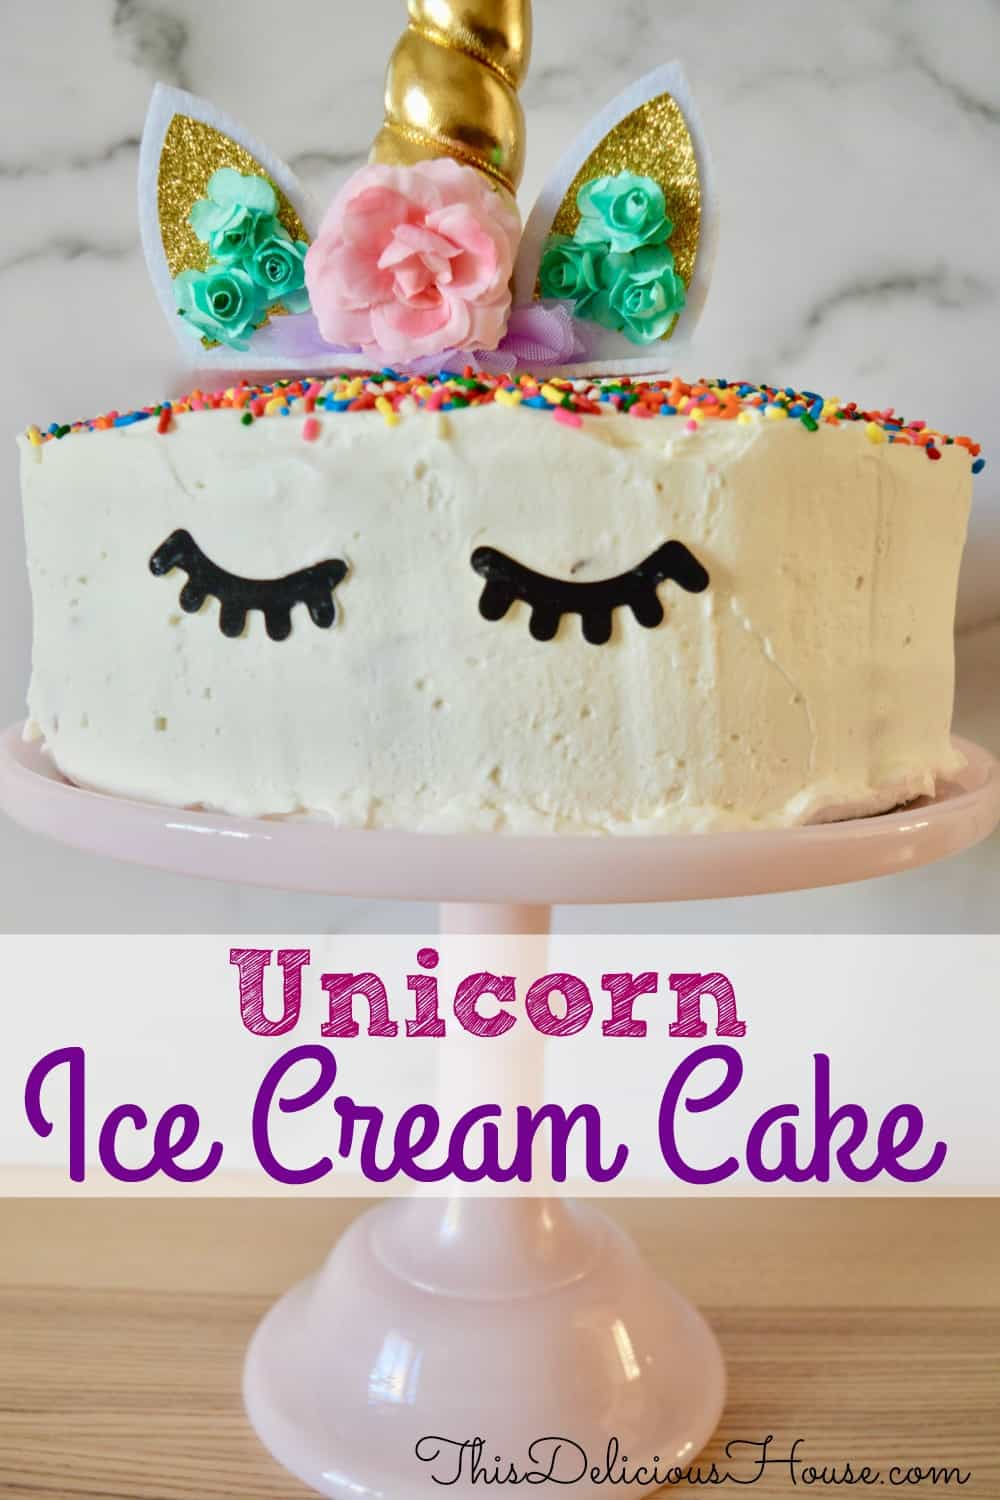 Unicorn Ice Cream Cake.